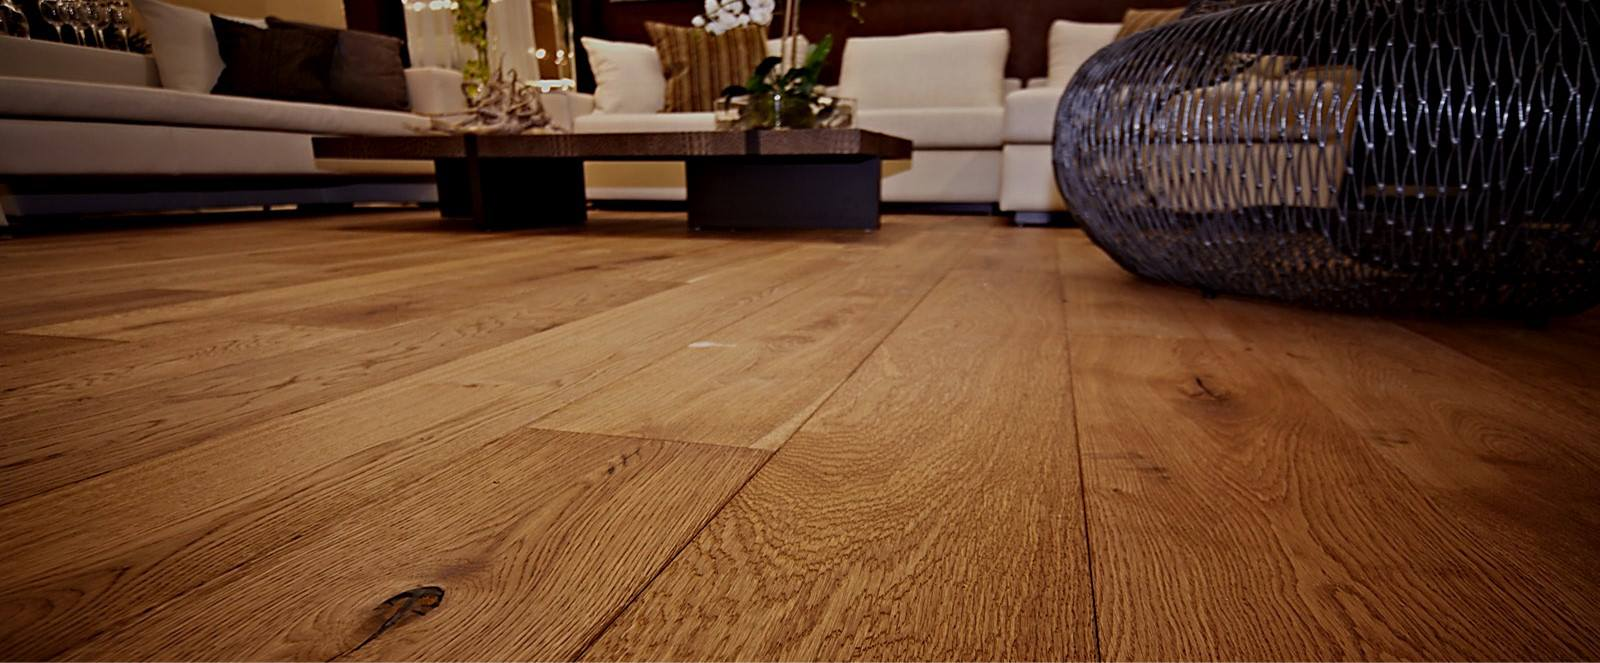 hardwood floors by Alberta Royal Flo